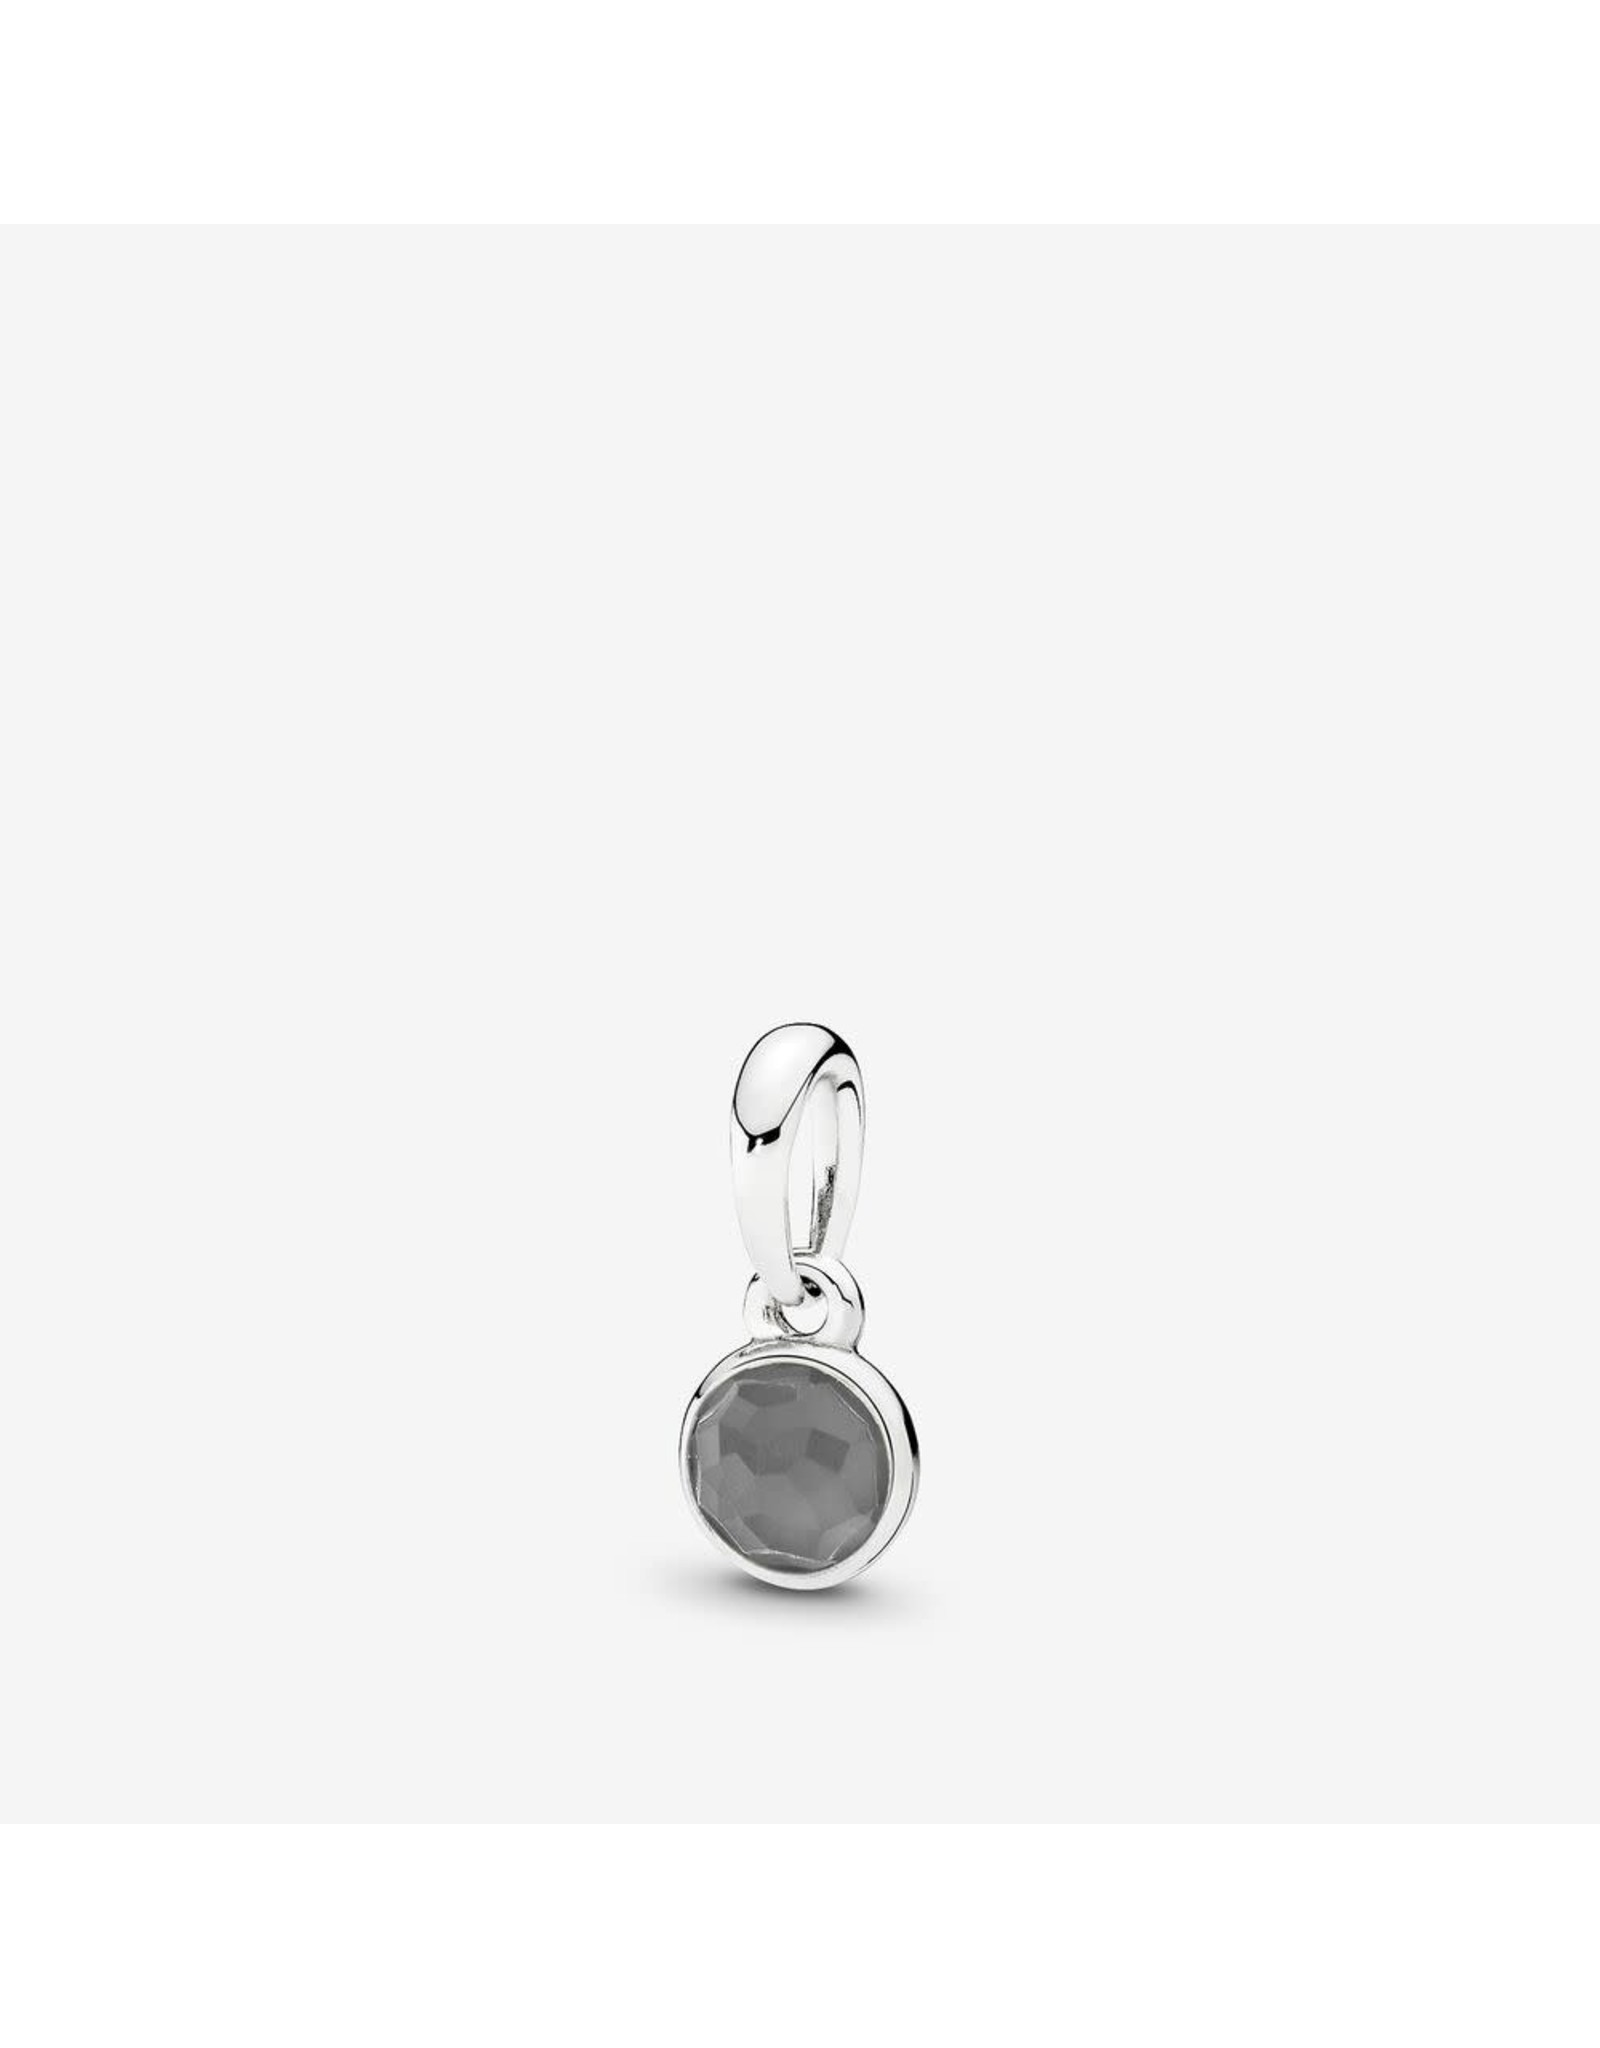 Pandora Pandora Pendant June Droplet With Grey Moonstone